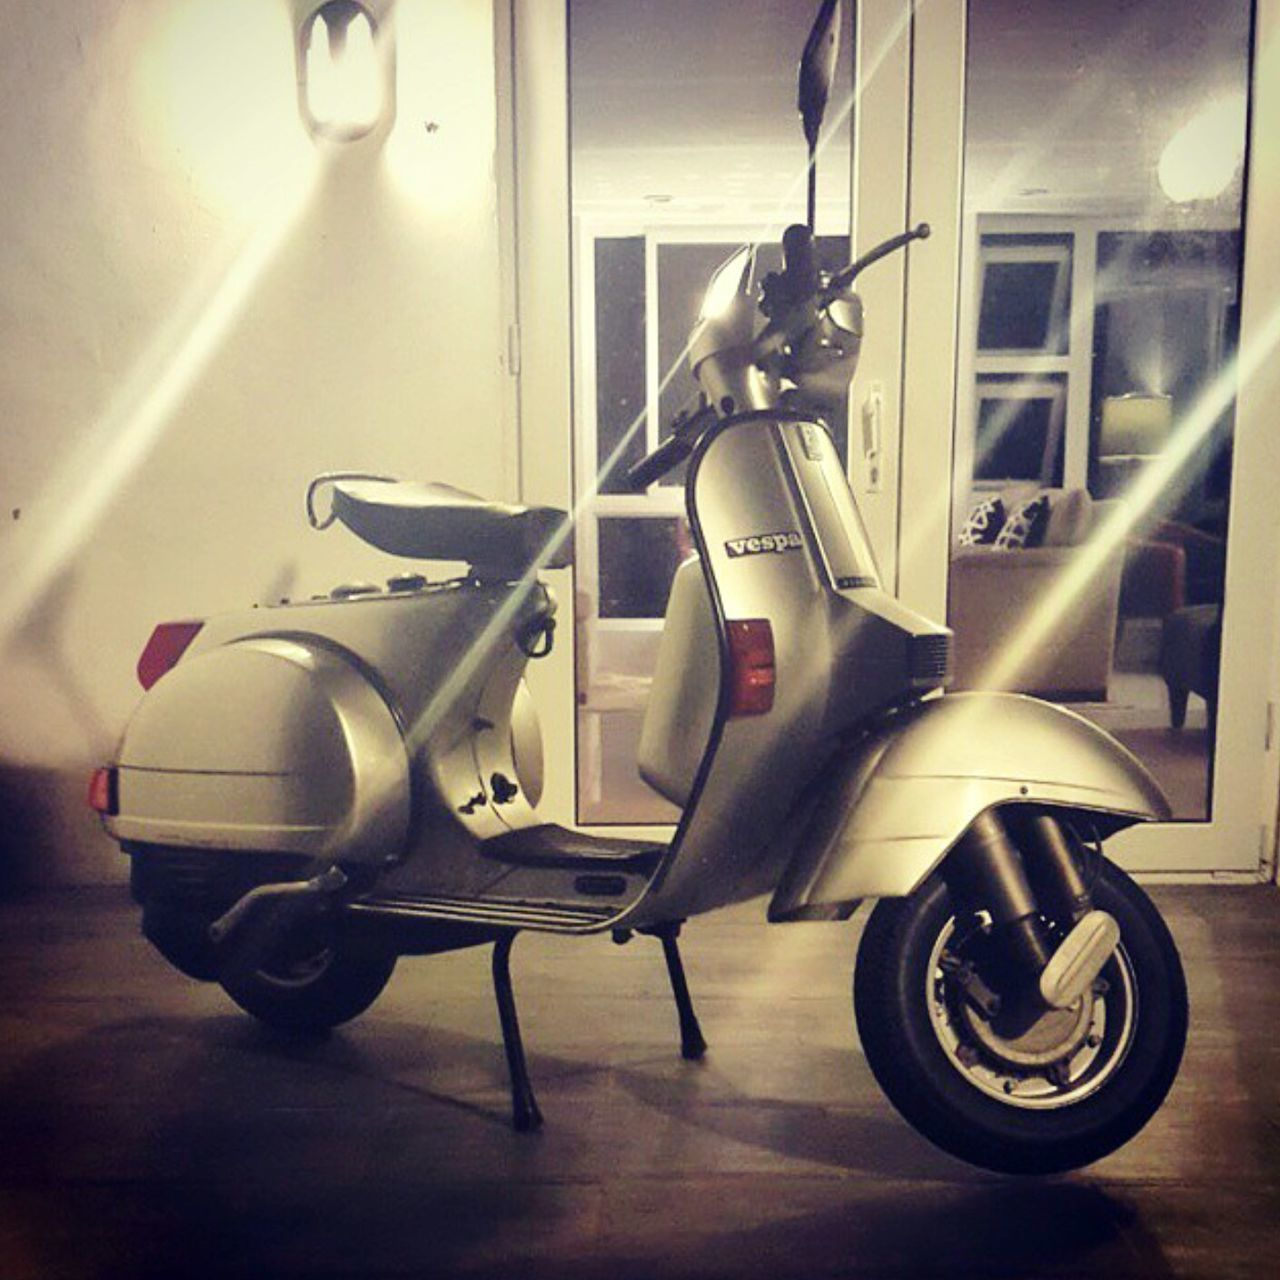 Vespa PX150E Vespa Classic Classic Beauty Classic Elegance 1997 Timeless Beauty Why We Ride Trusted Steed